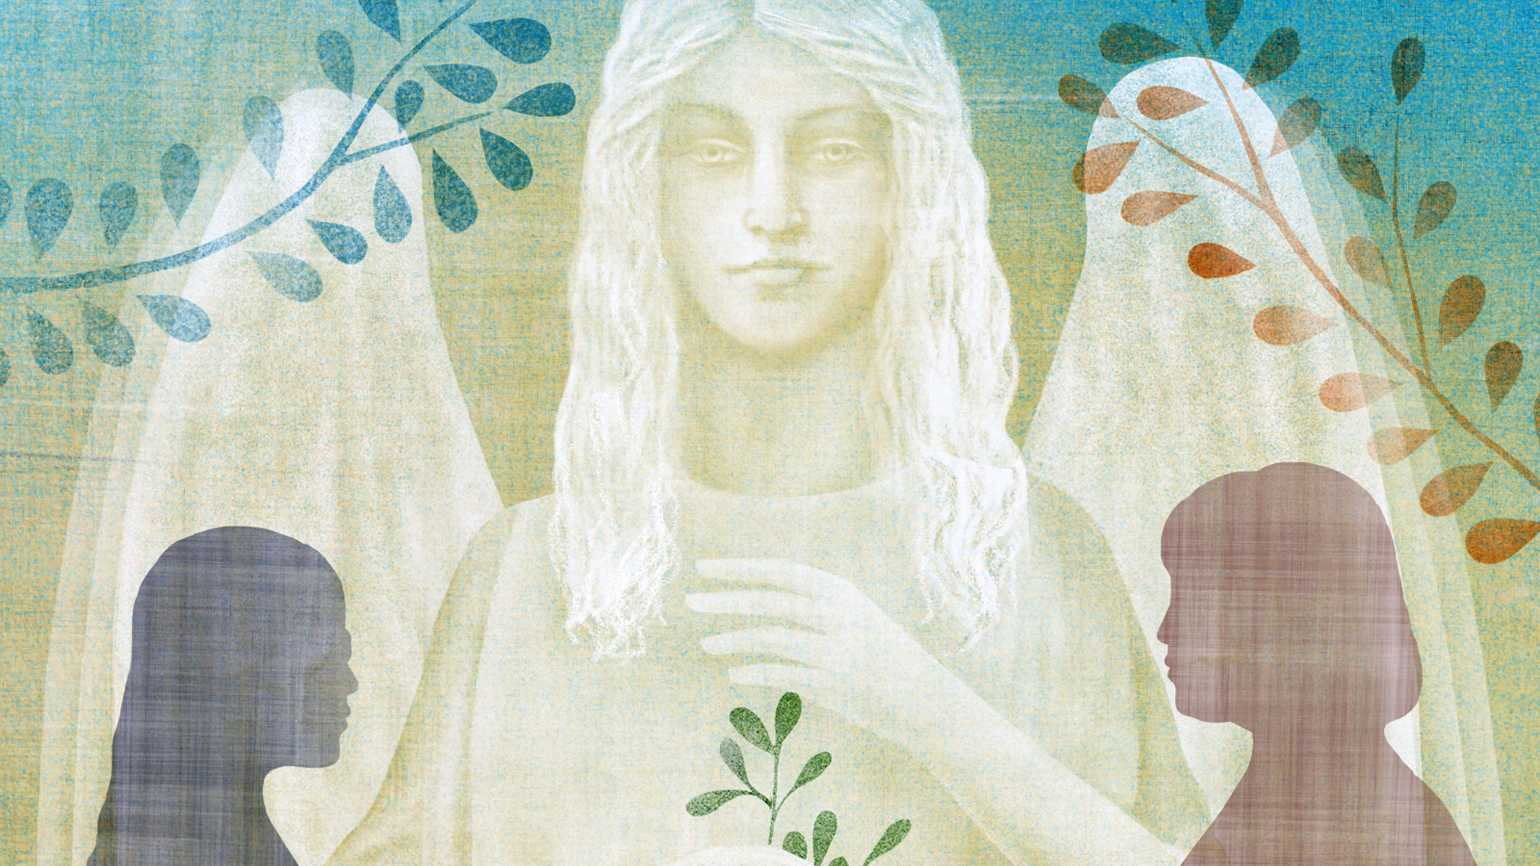 An artist's rendering of two female silhouettes facing each other in front of an angelic figure